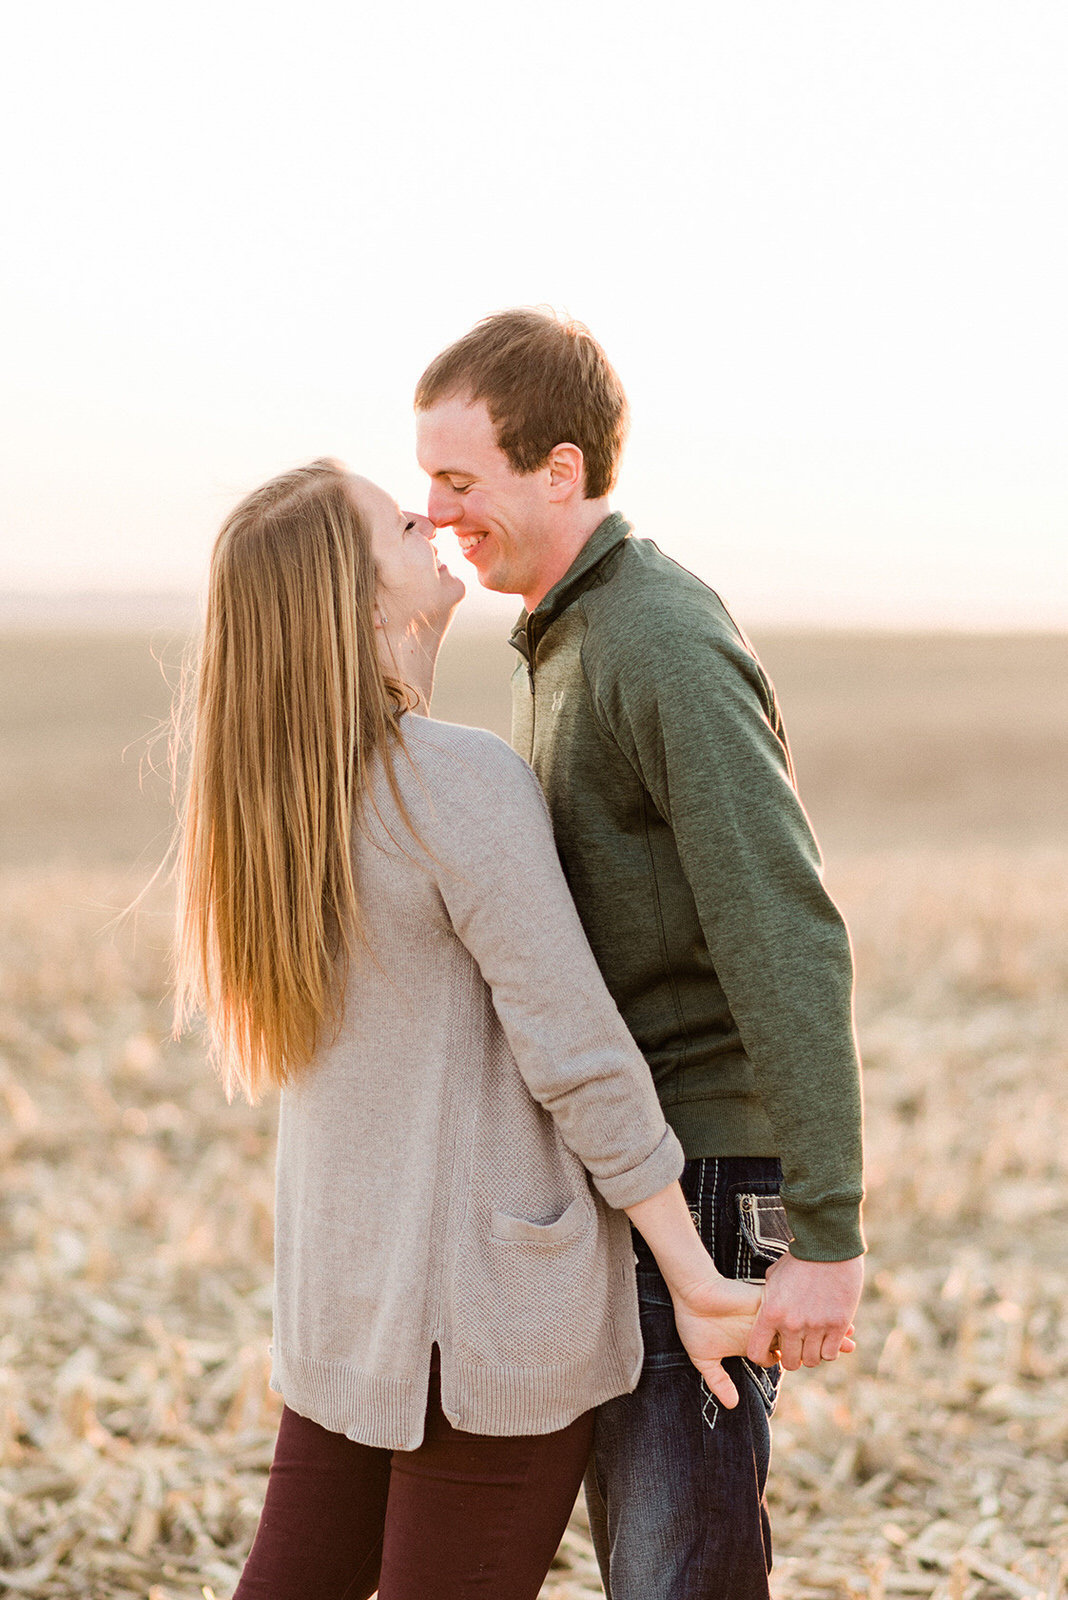 Nicole Corrine Iowa Wwdding Photographer Farm Engagement Session nose kiss